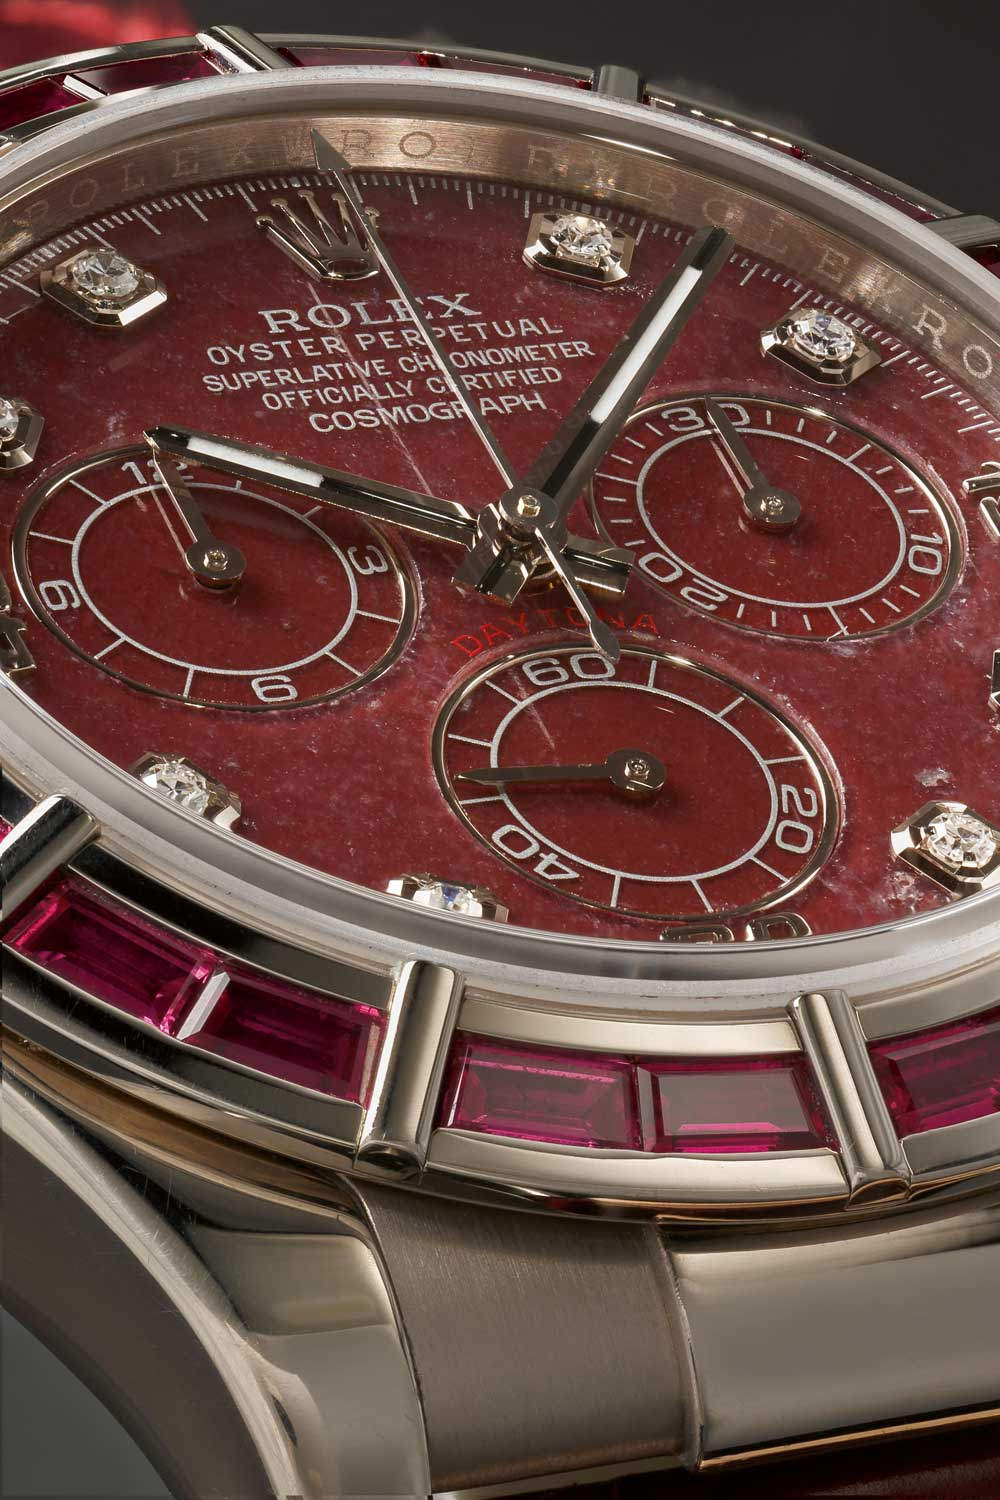 A Daytona with grossular dial and baguette-cut rubies on the bezel